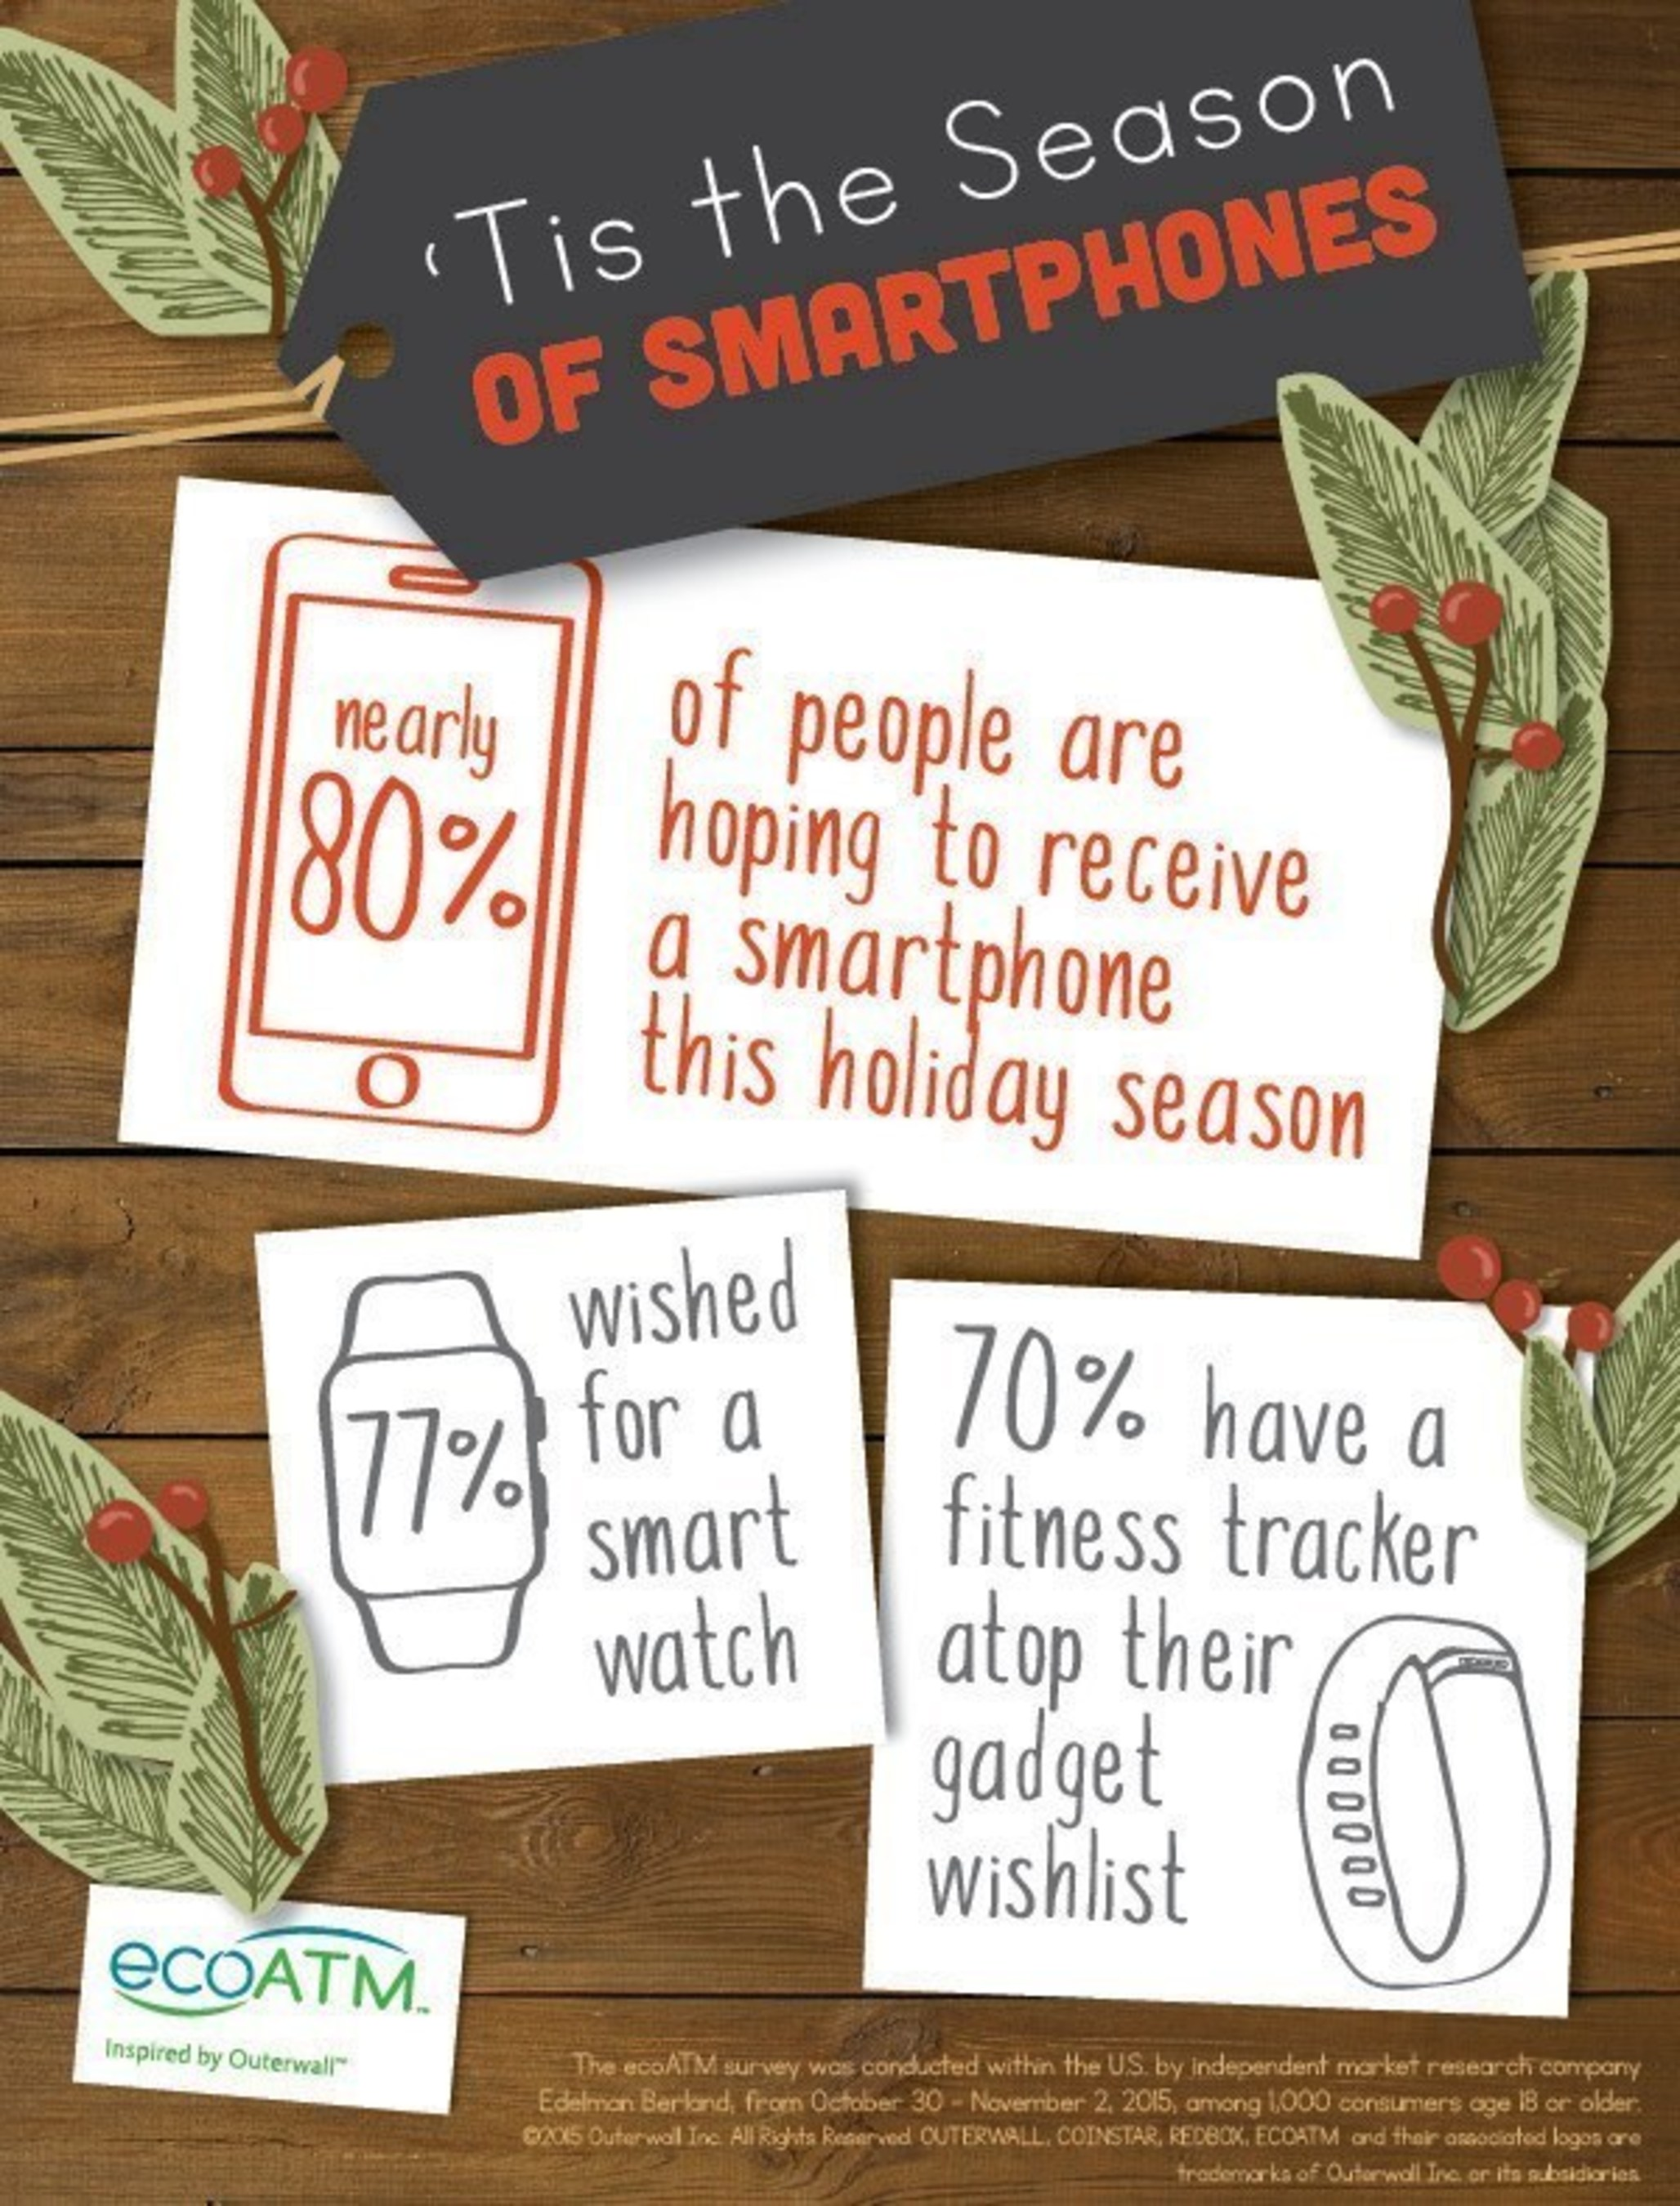 ecoATM survey finds that nearly 80 percent of respondents are hoping to receive a smartphone this holiday season, followed closely by a smartwatch (77 percent) and fitness band/tracker (70 percent)